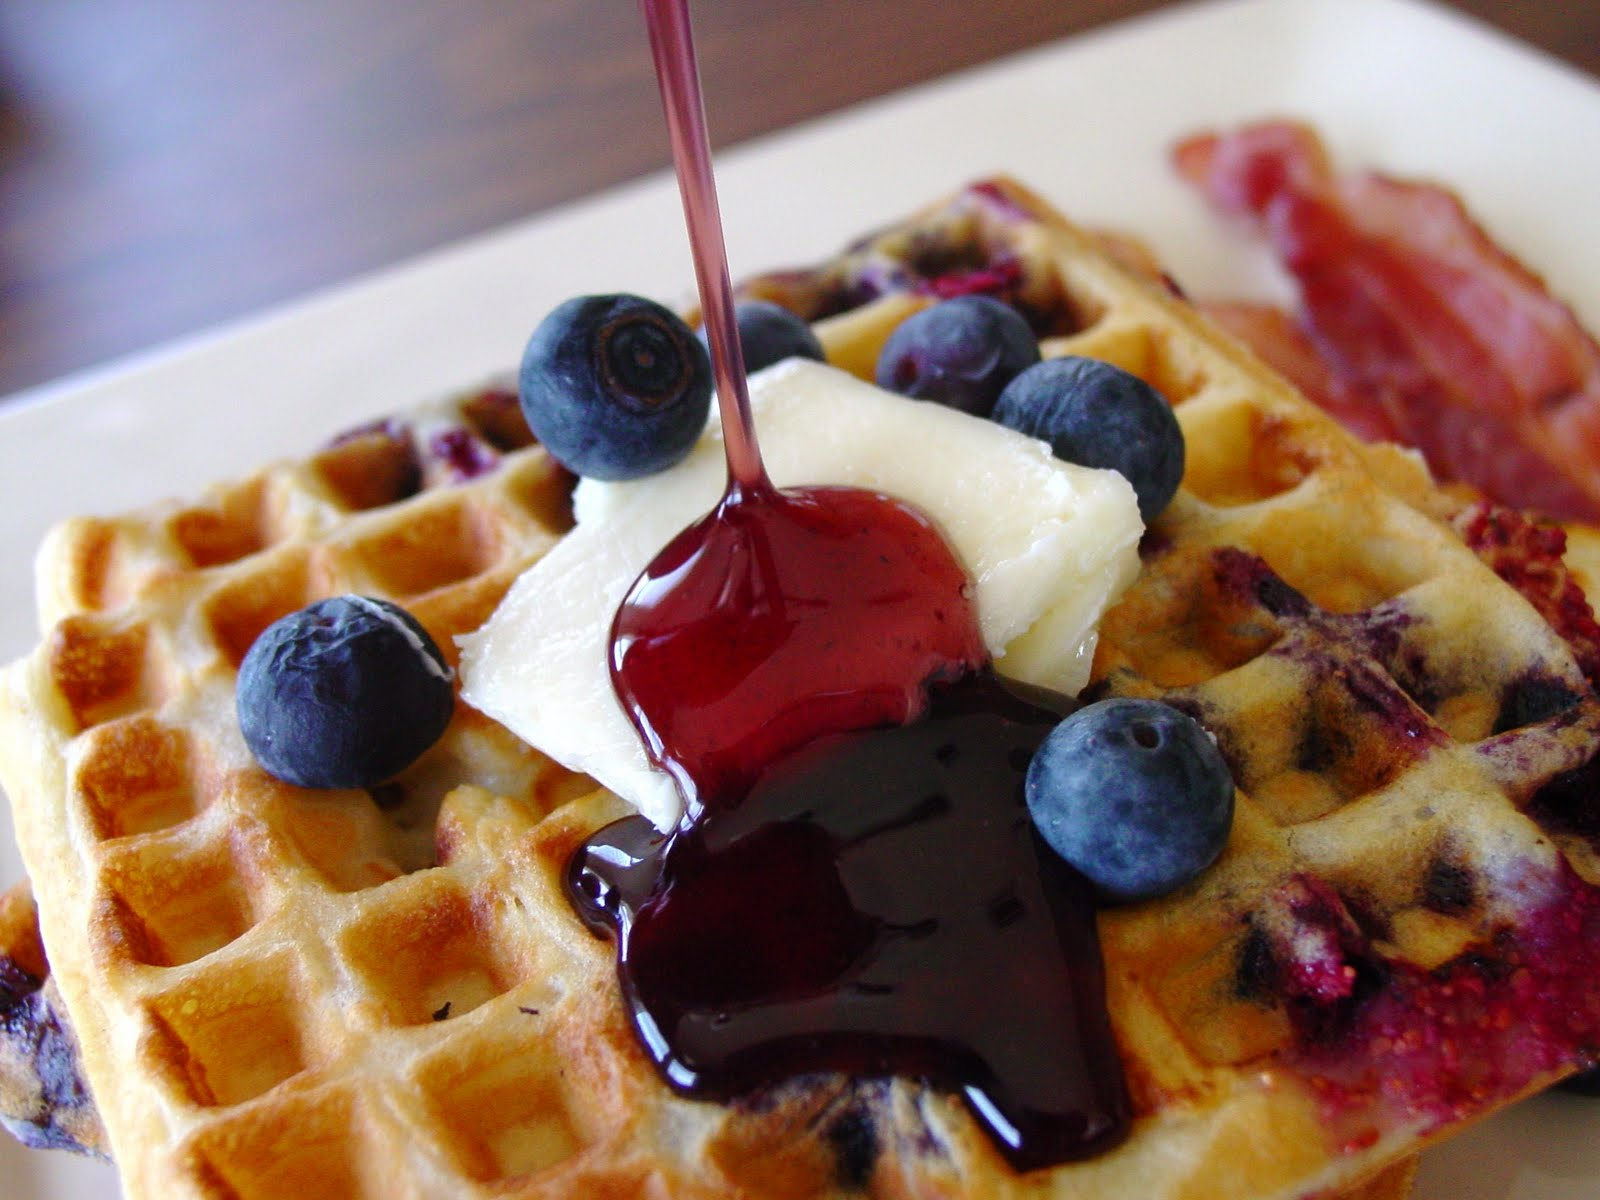 Berry Sour Cream Waffles adapted from A Feast For The Eyes